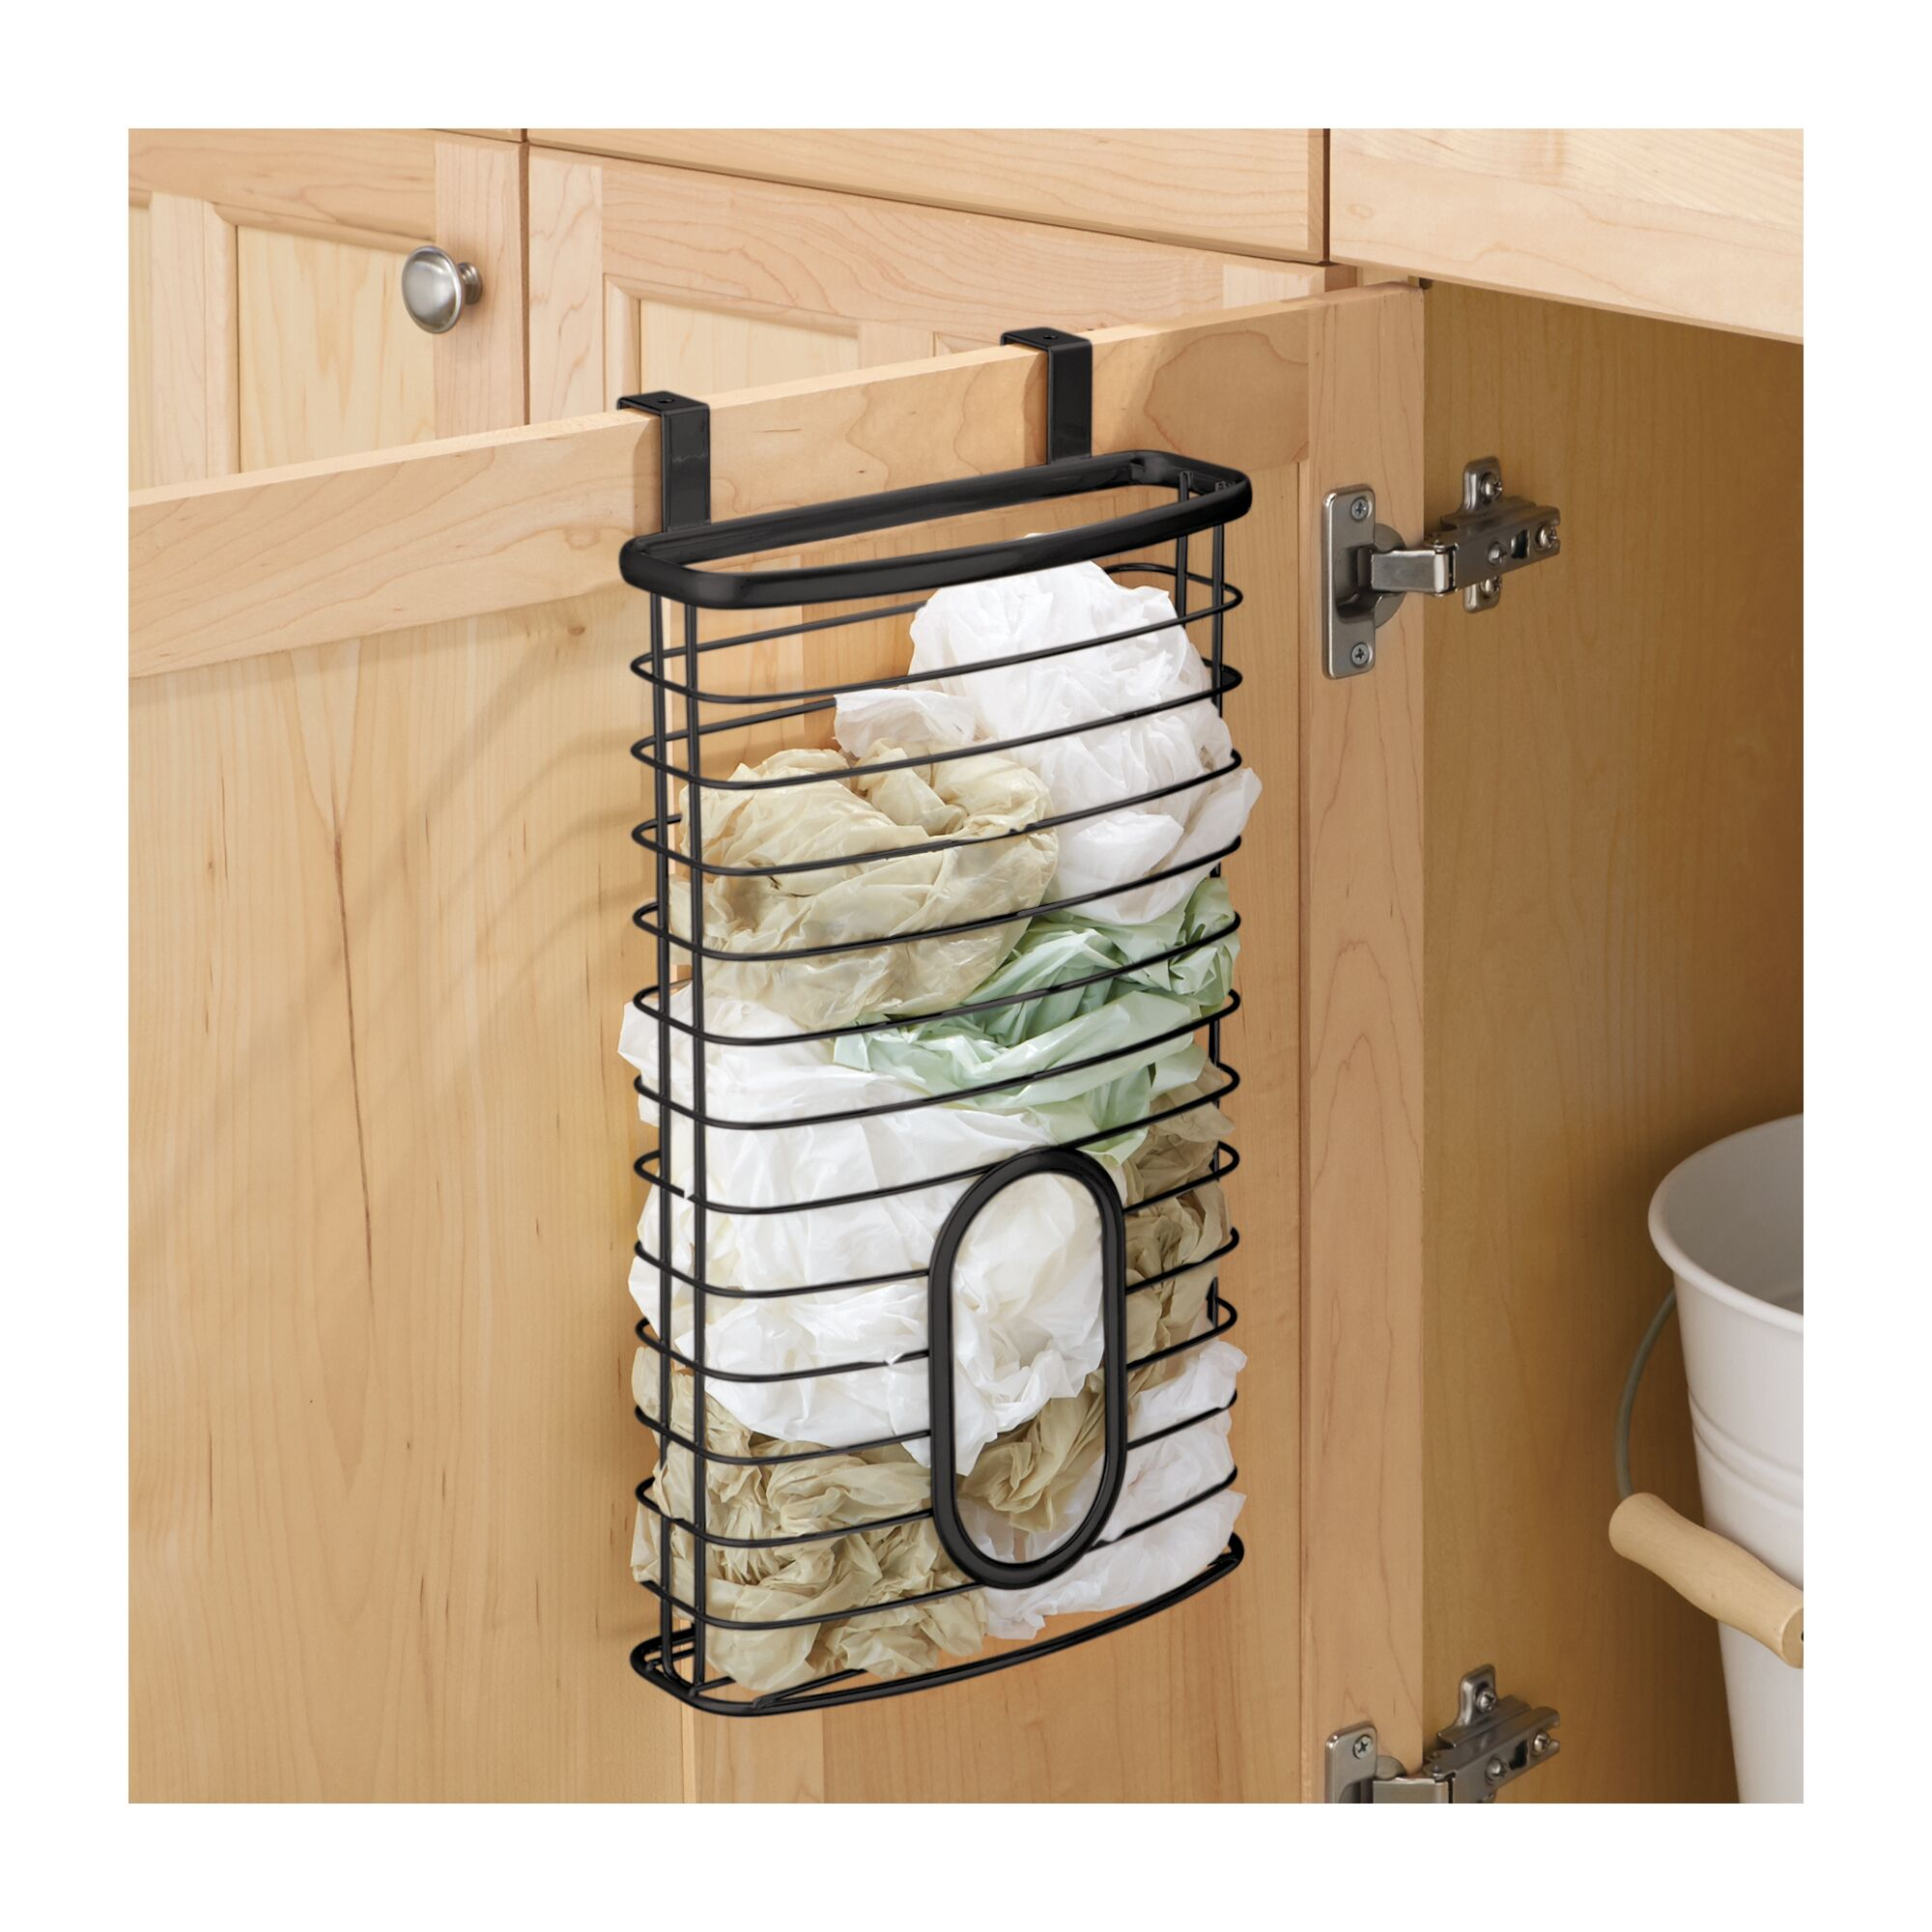 Baskets Above Kitchen Cabinets: MDesign Metal Over Cabinet Kitchen Storage Basket, Holds